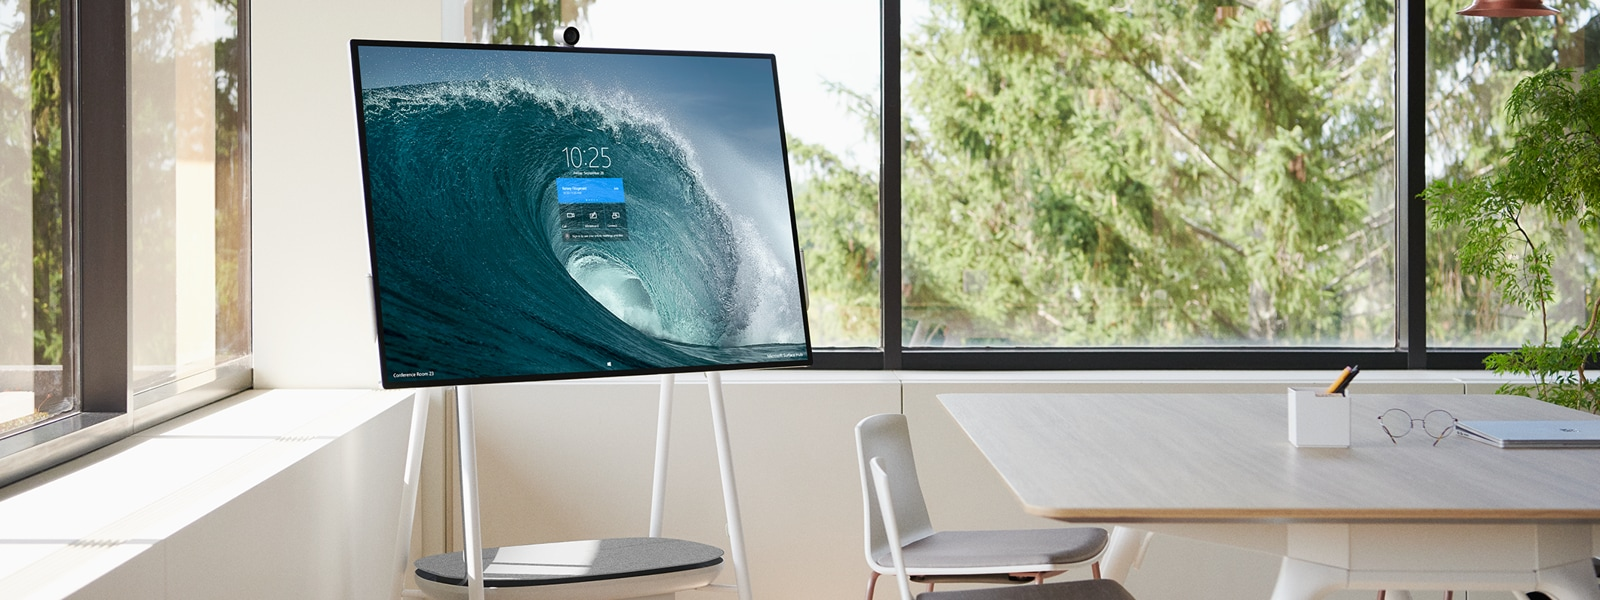 A Surface Hub 2 sits on a mobile stand and displays a start screen in a conference room.